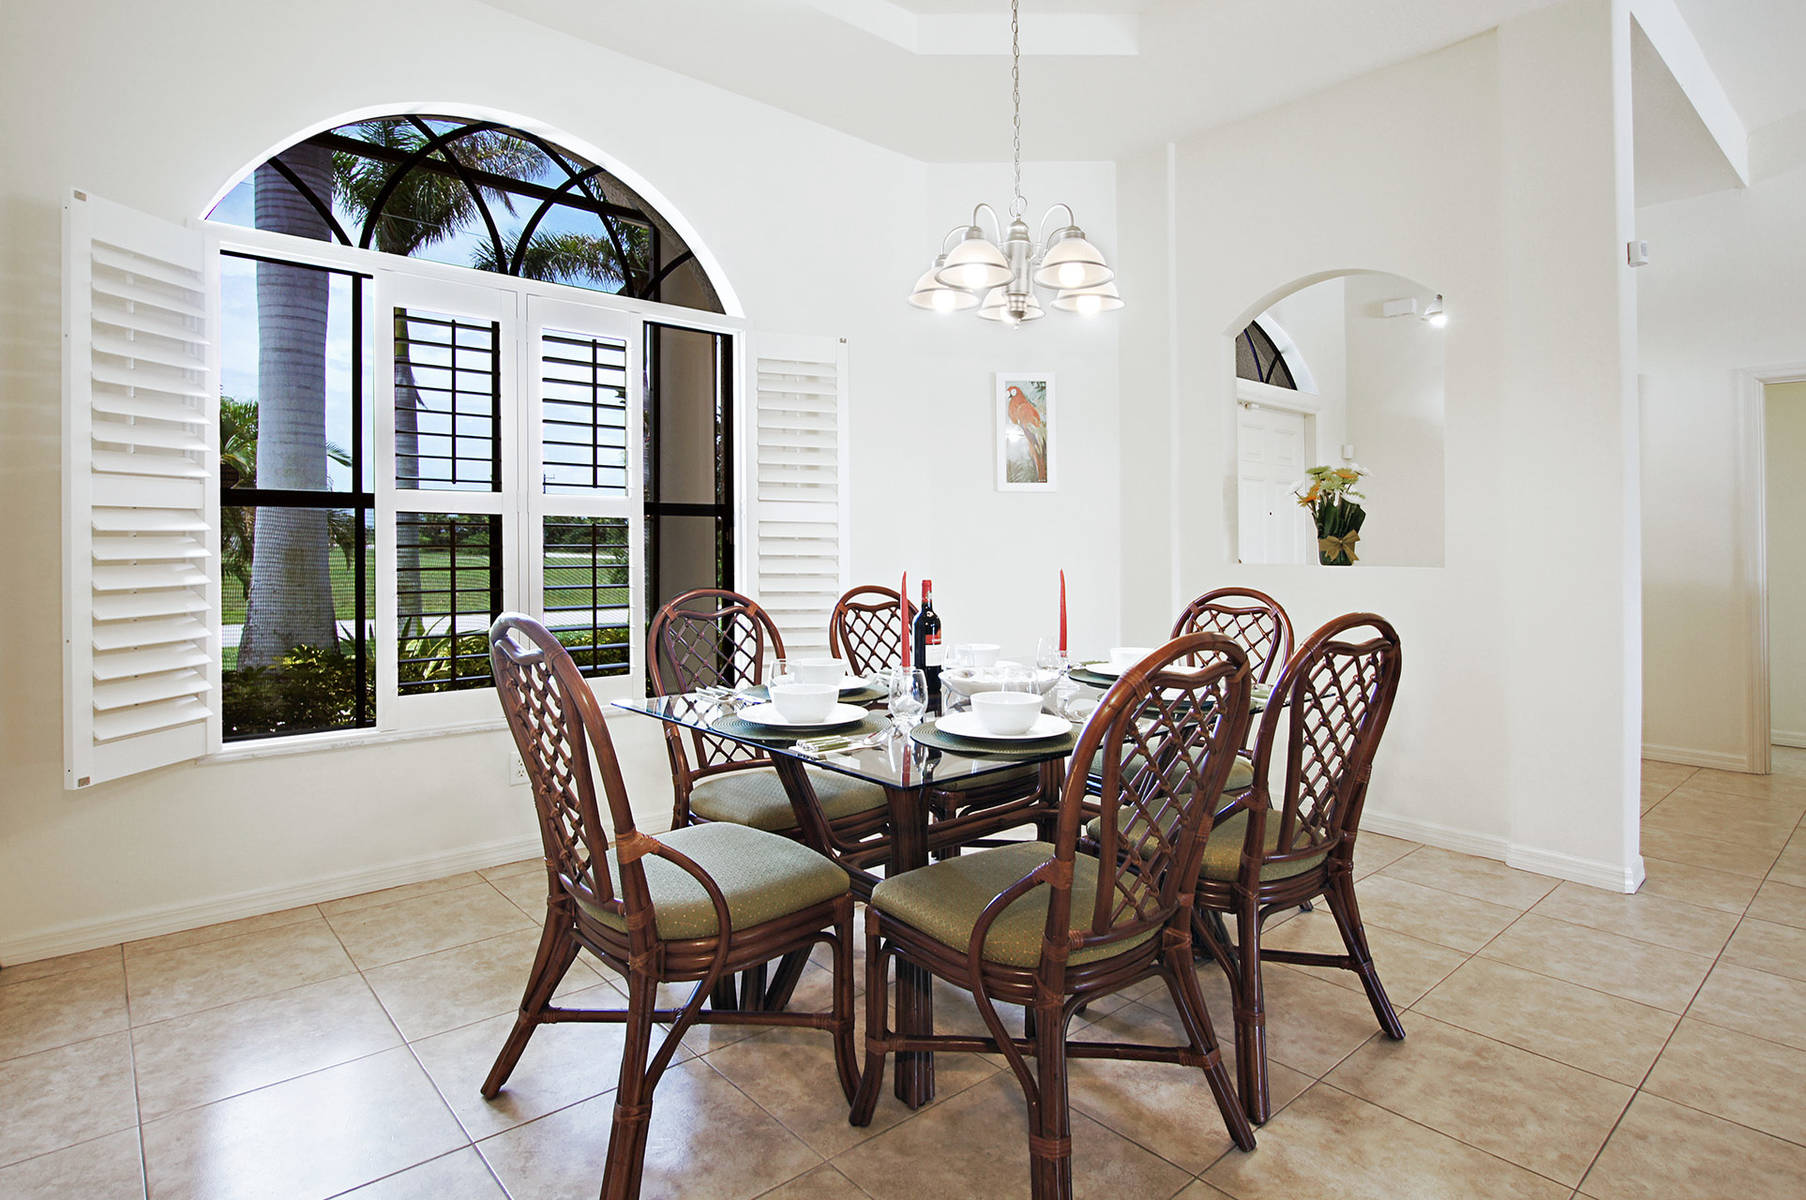 Swfl360 Provides Virtual Tours And Photograpy In Cape C Fort Myers Naples All Off South West Florida